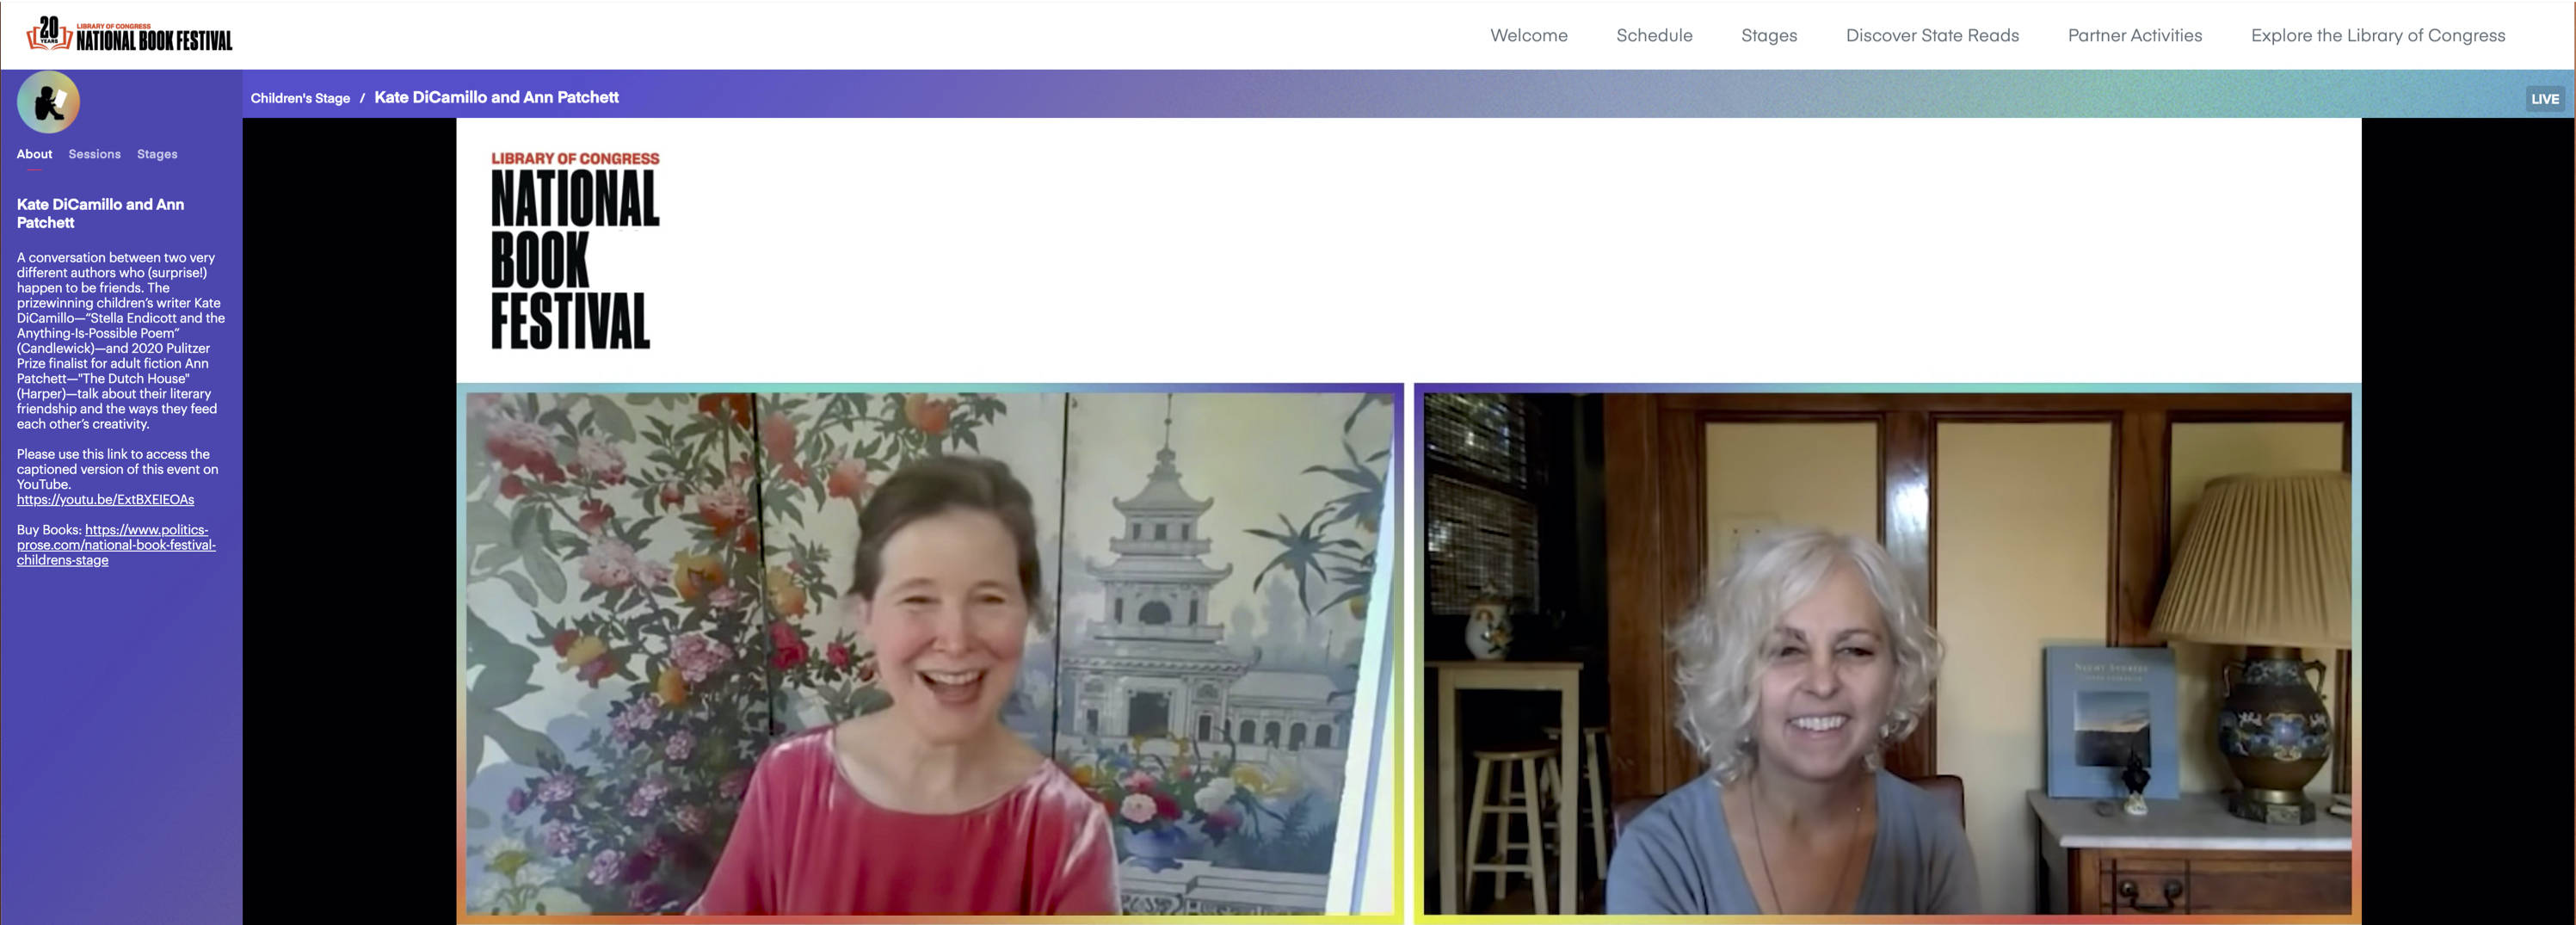 Ann Patchett and Kate DiCamillo talked about their long friendship during the virtual National Book Festival. (The Library of Congress)